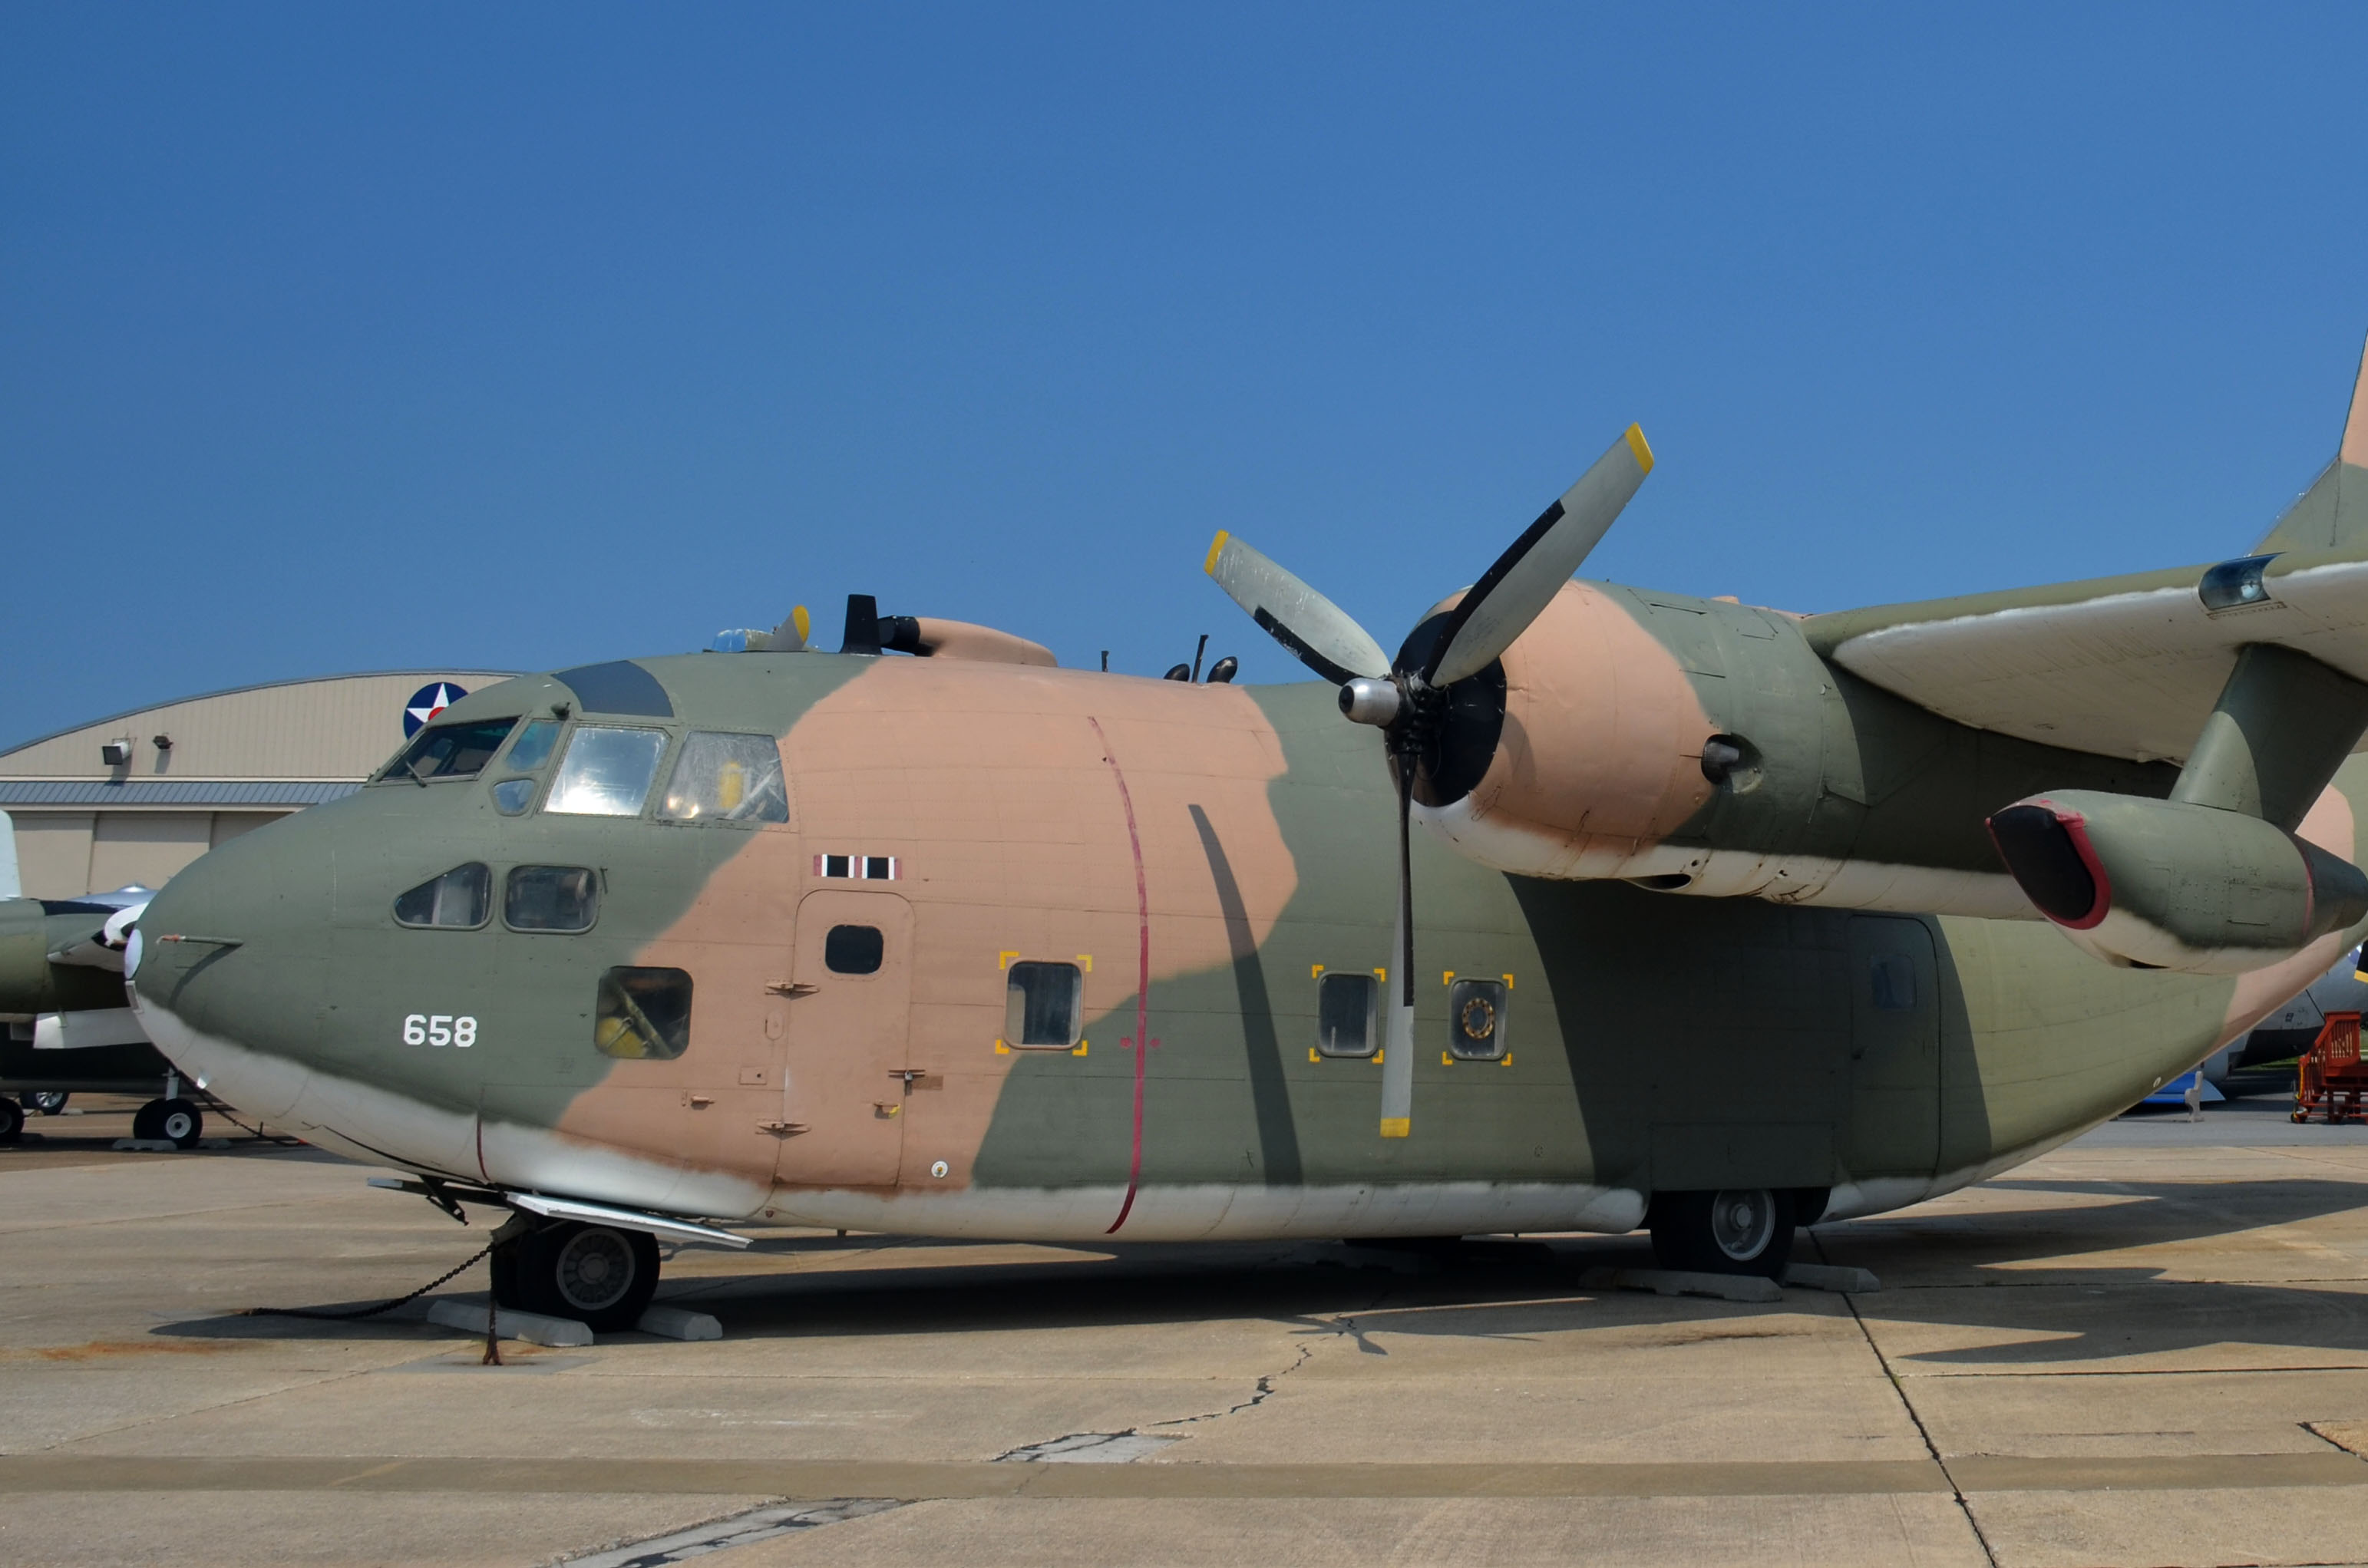 C-123K Provider - Air Mobility Command Museum